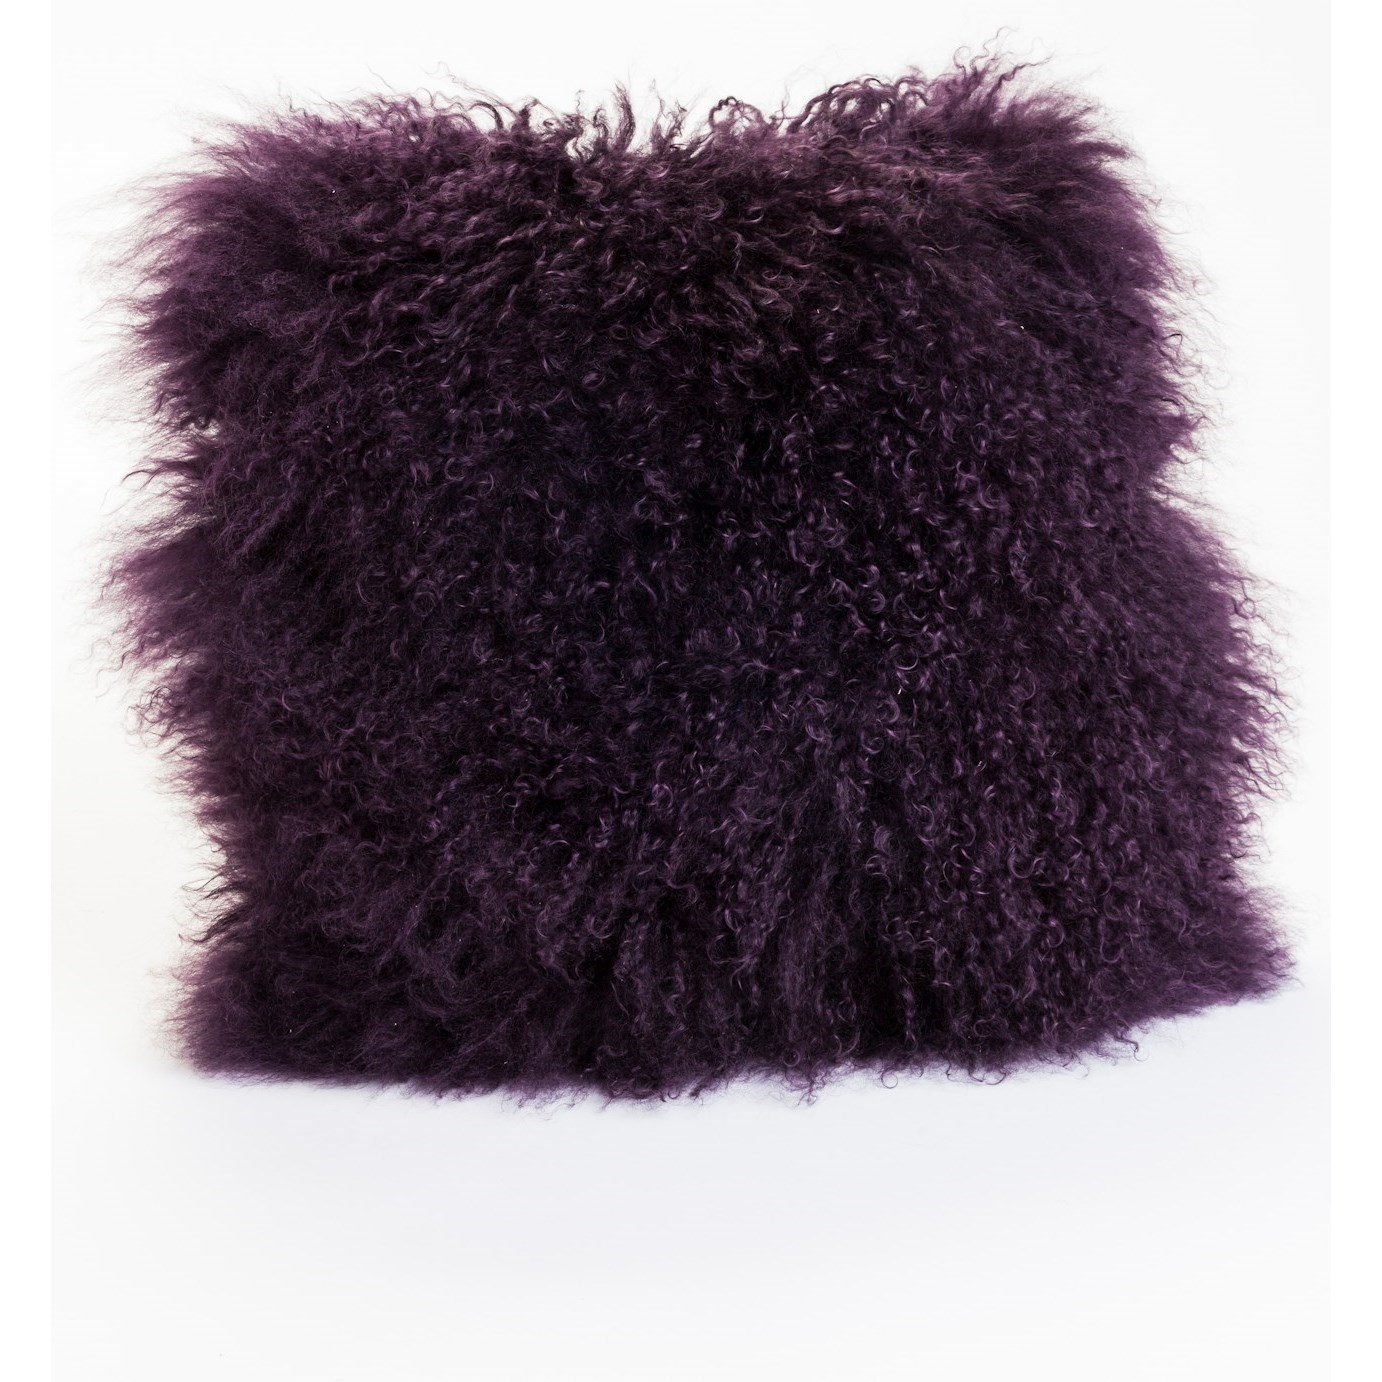 Pillows and Throws Lamb Fur Pillow Purple by Moe's Home Collection at Stoney Creek Furniture